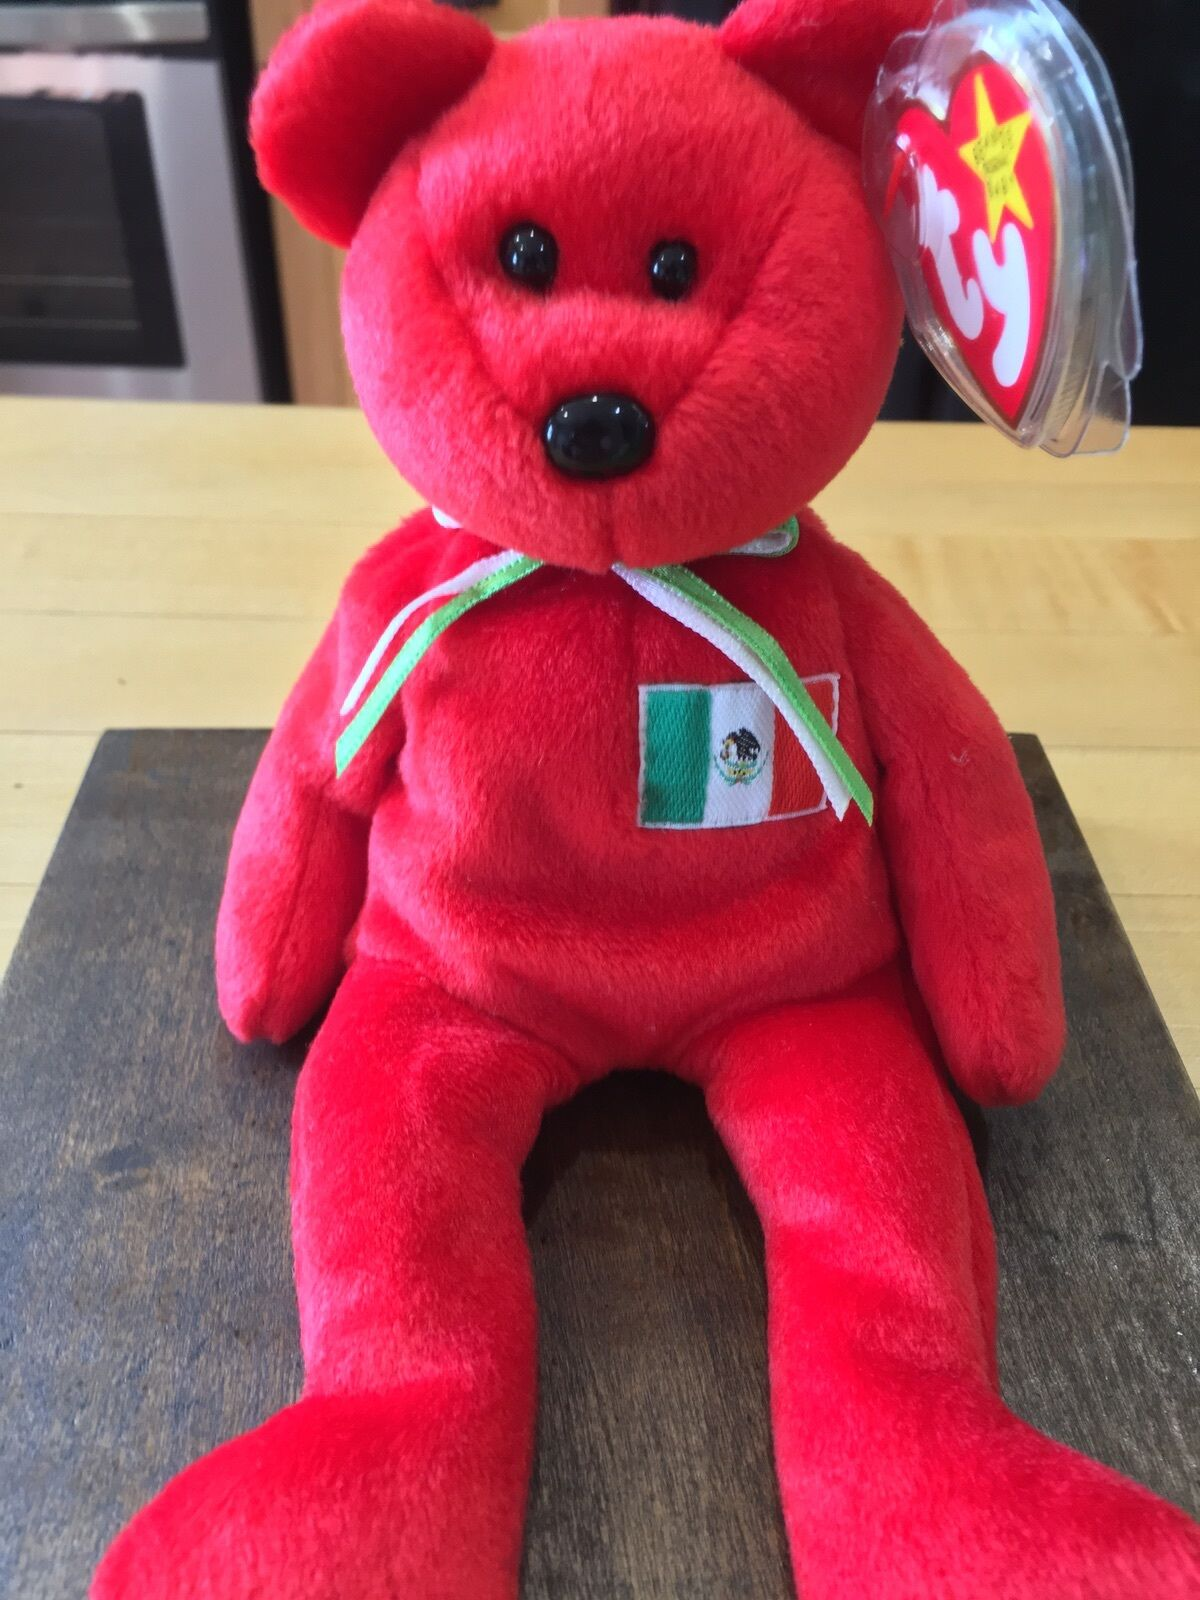 Osito  the Mexican Bear TY Beanie Baby - No number stamp on tush tag